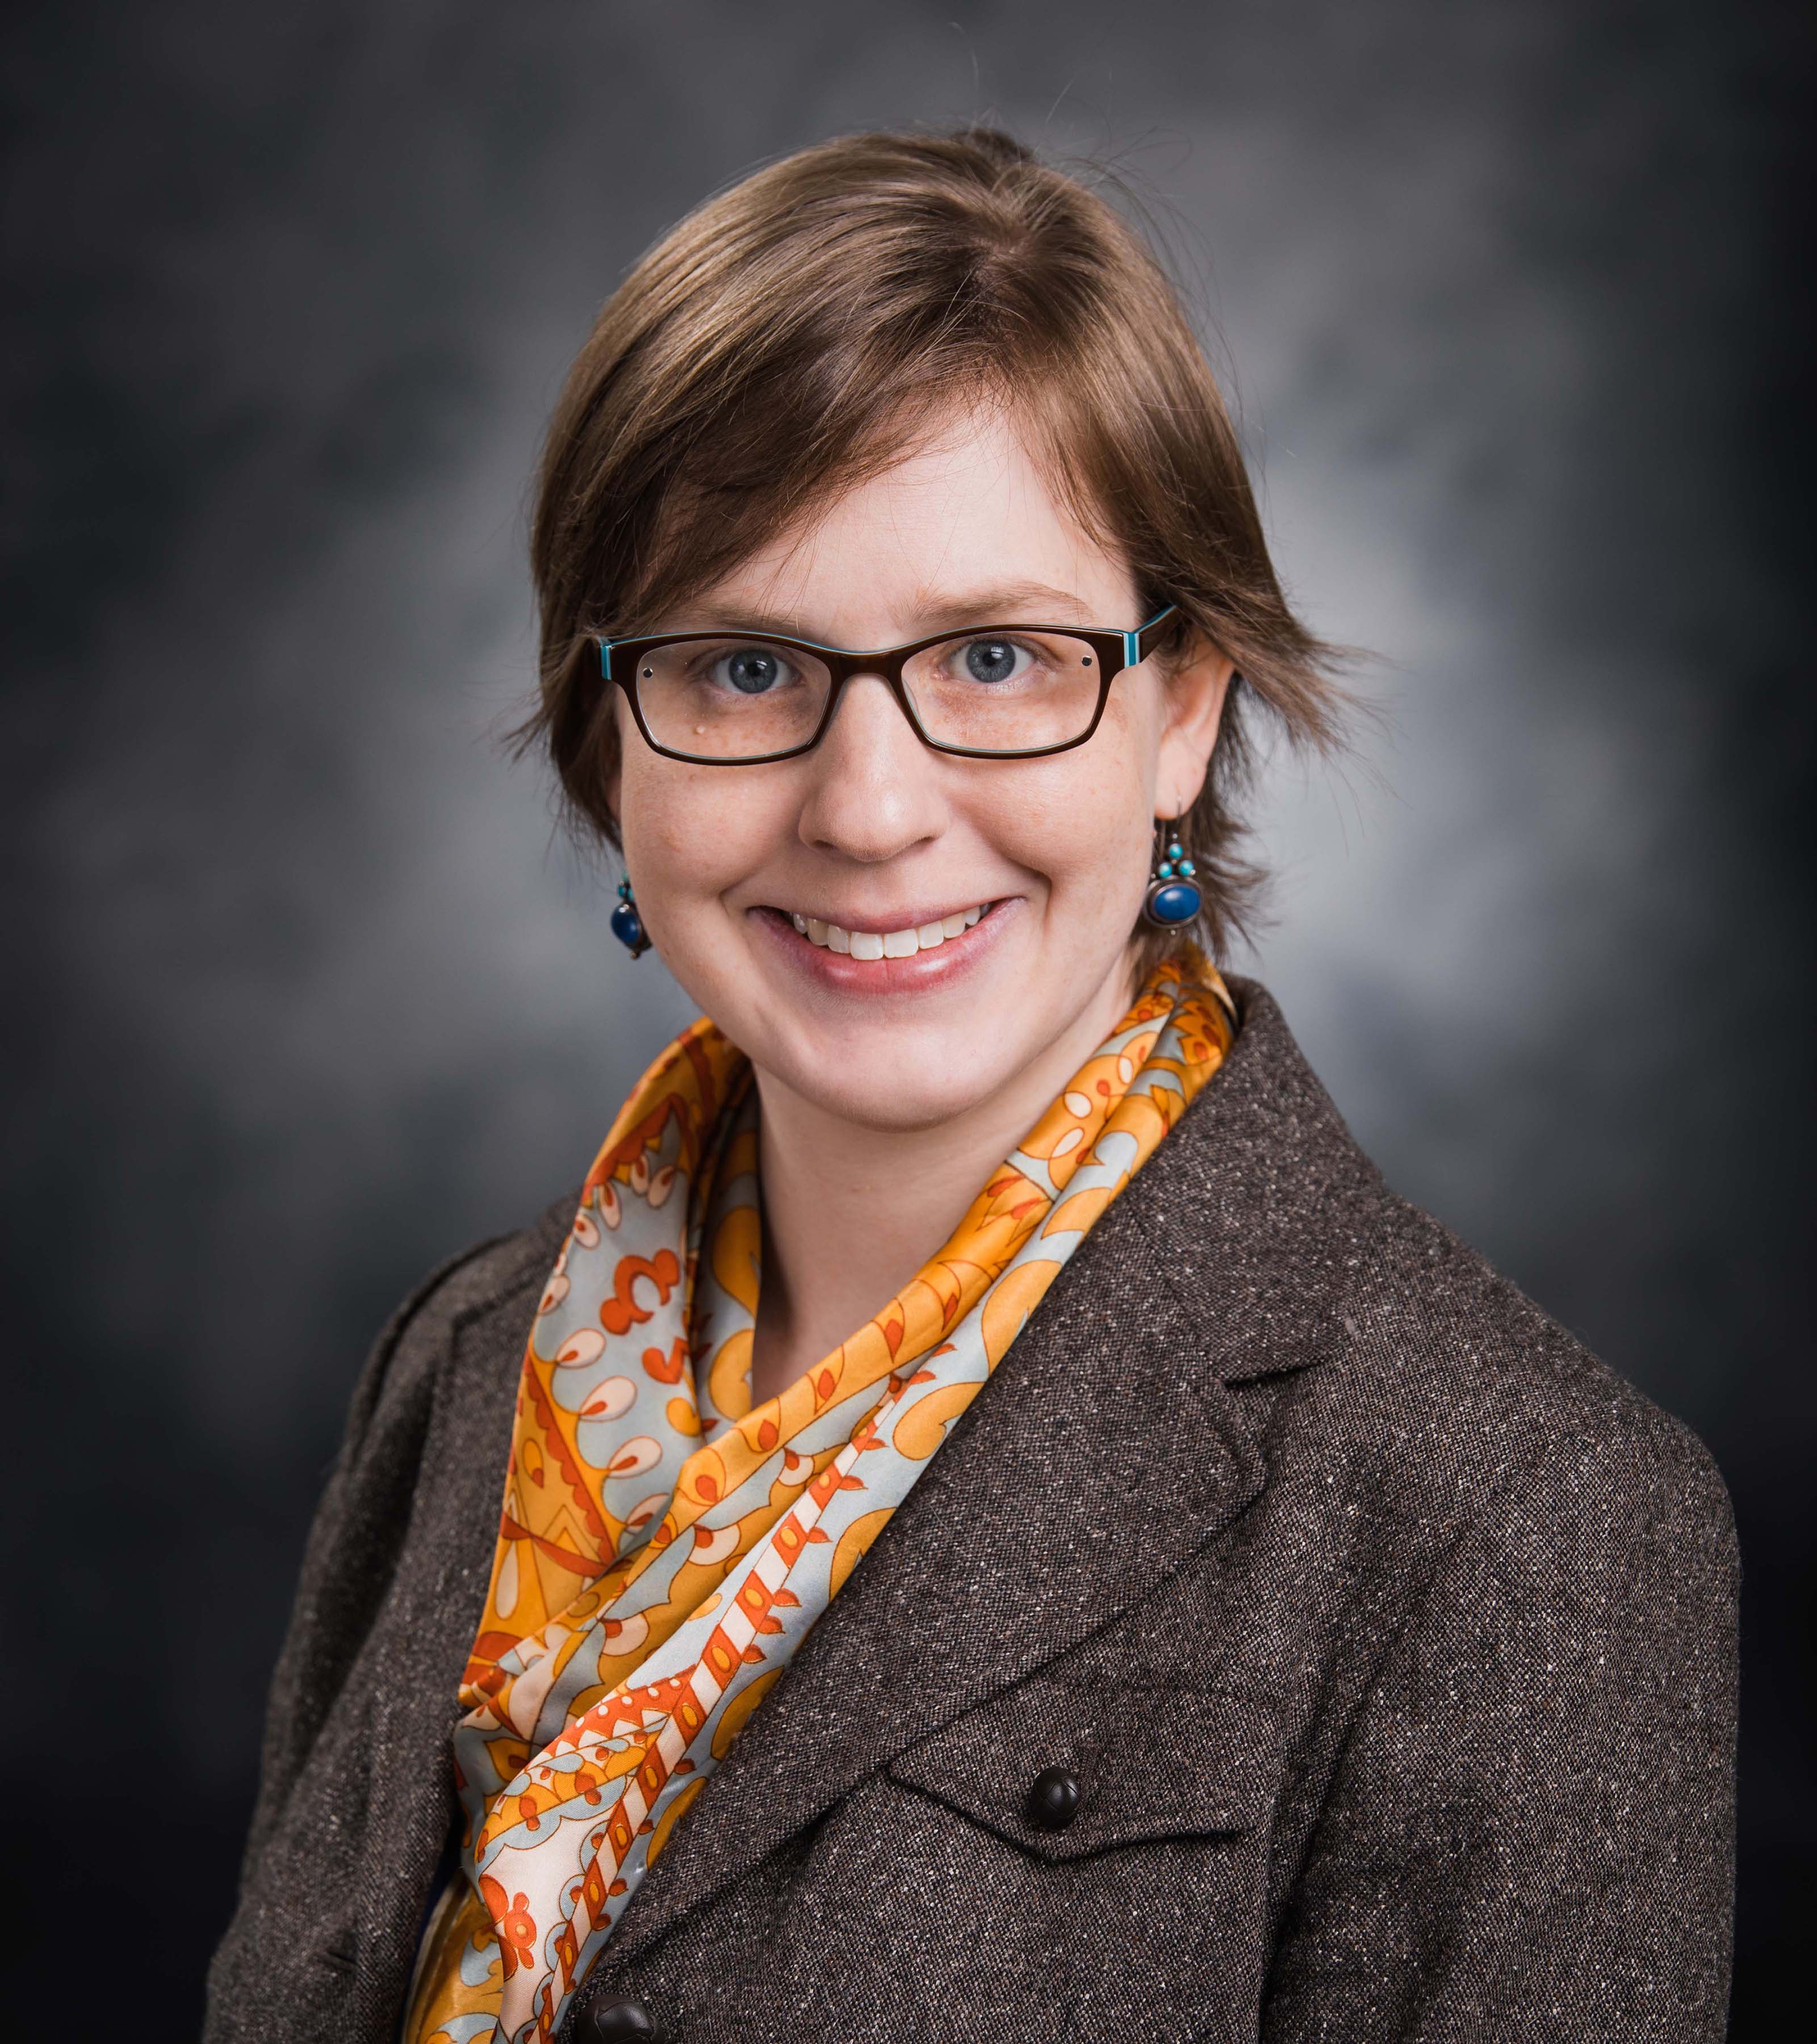 Photo of Emily McKendry-Smith, Ph.D.